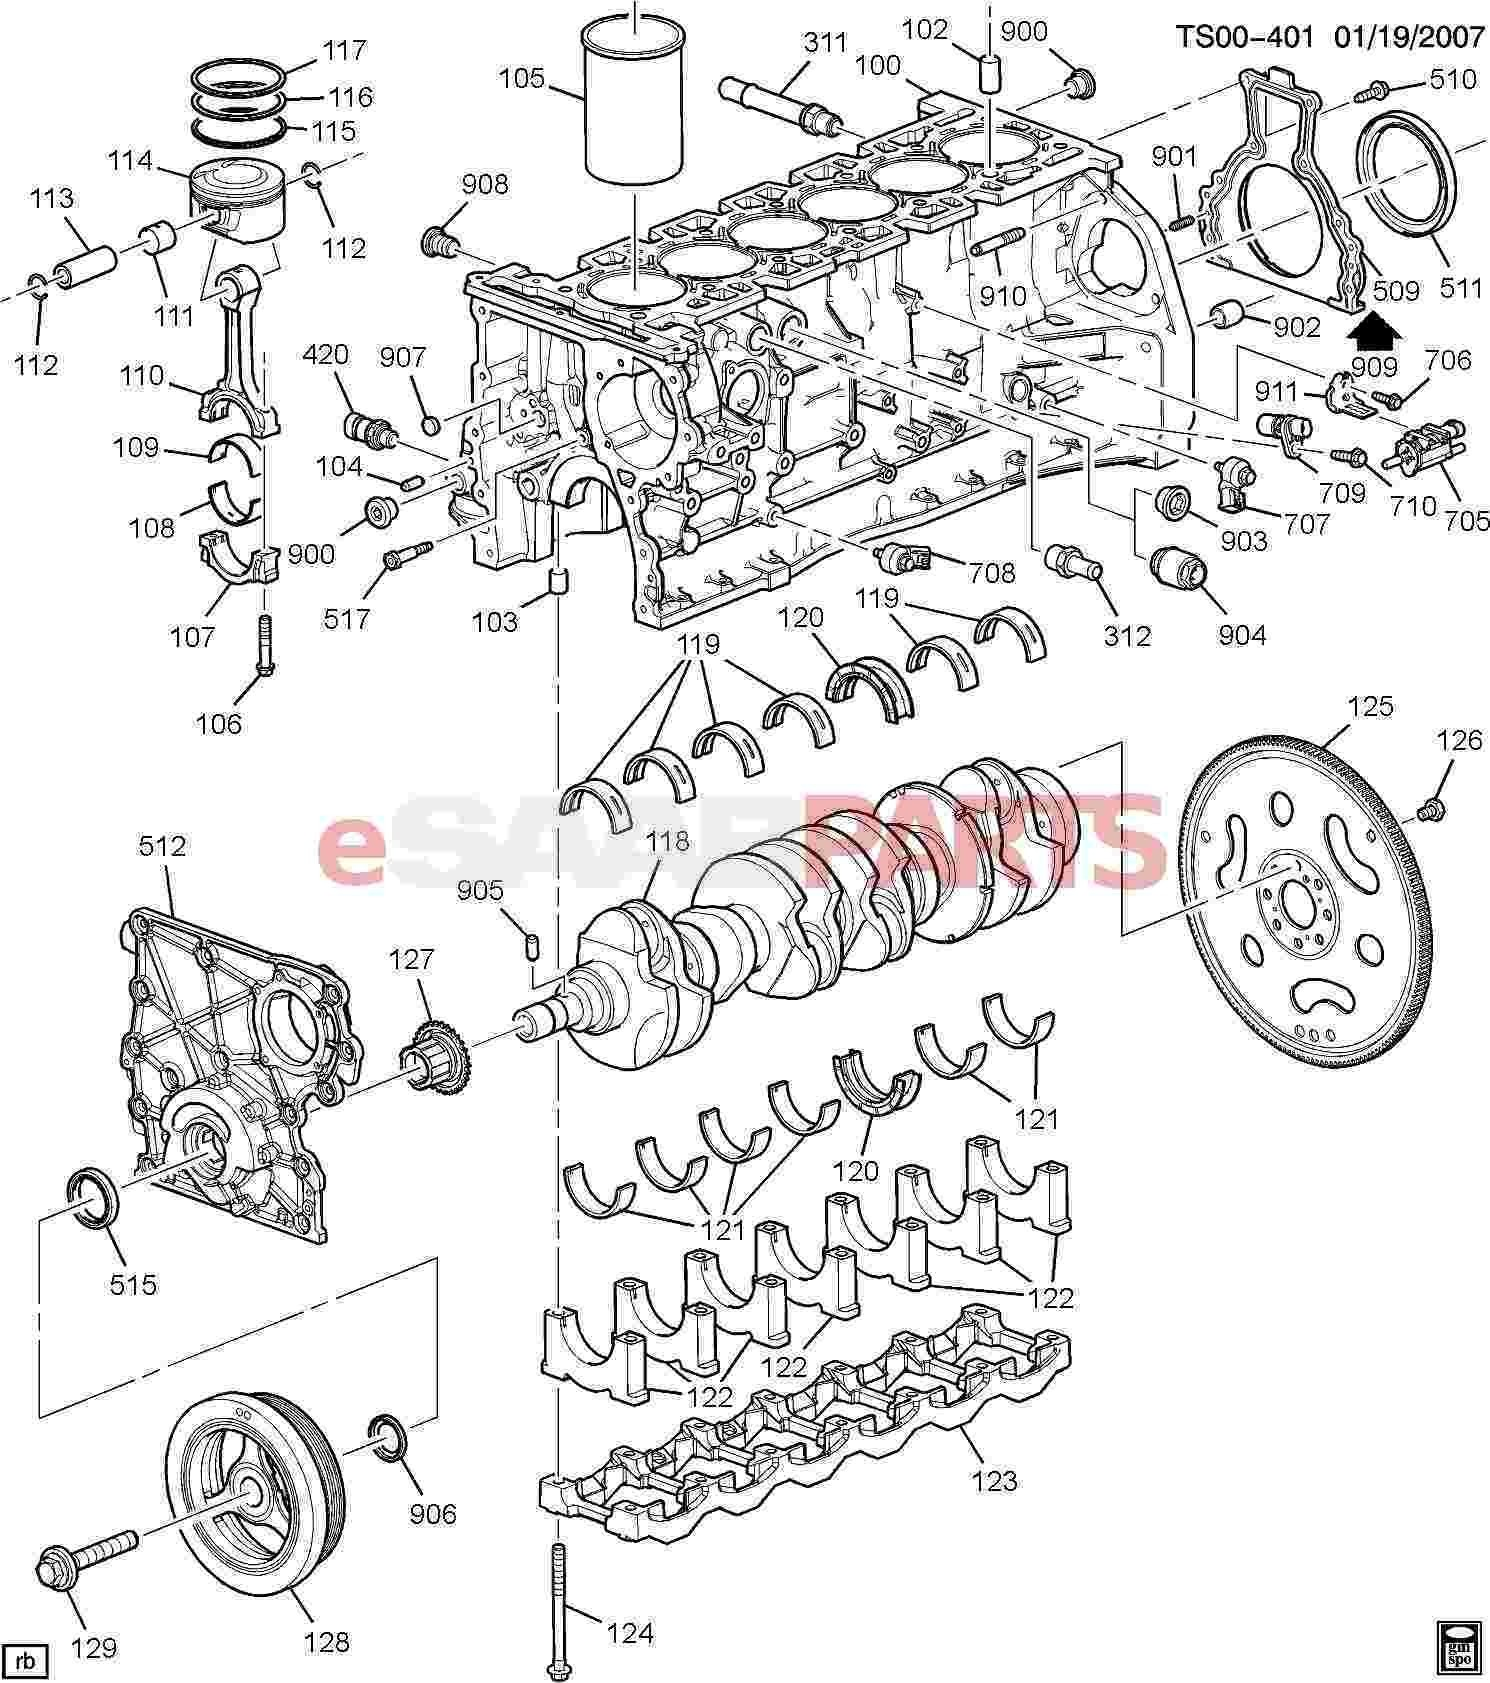 Engine Parts Diagram with Names Engine Parts Diagram Names ] Saab Plug M16x1 5—14 24 Od society Of Engine Parts Diagram with Names